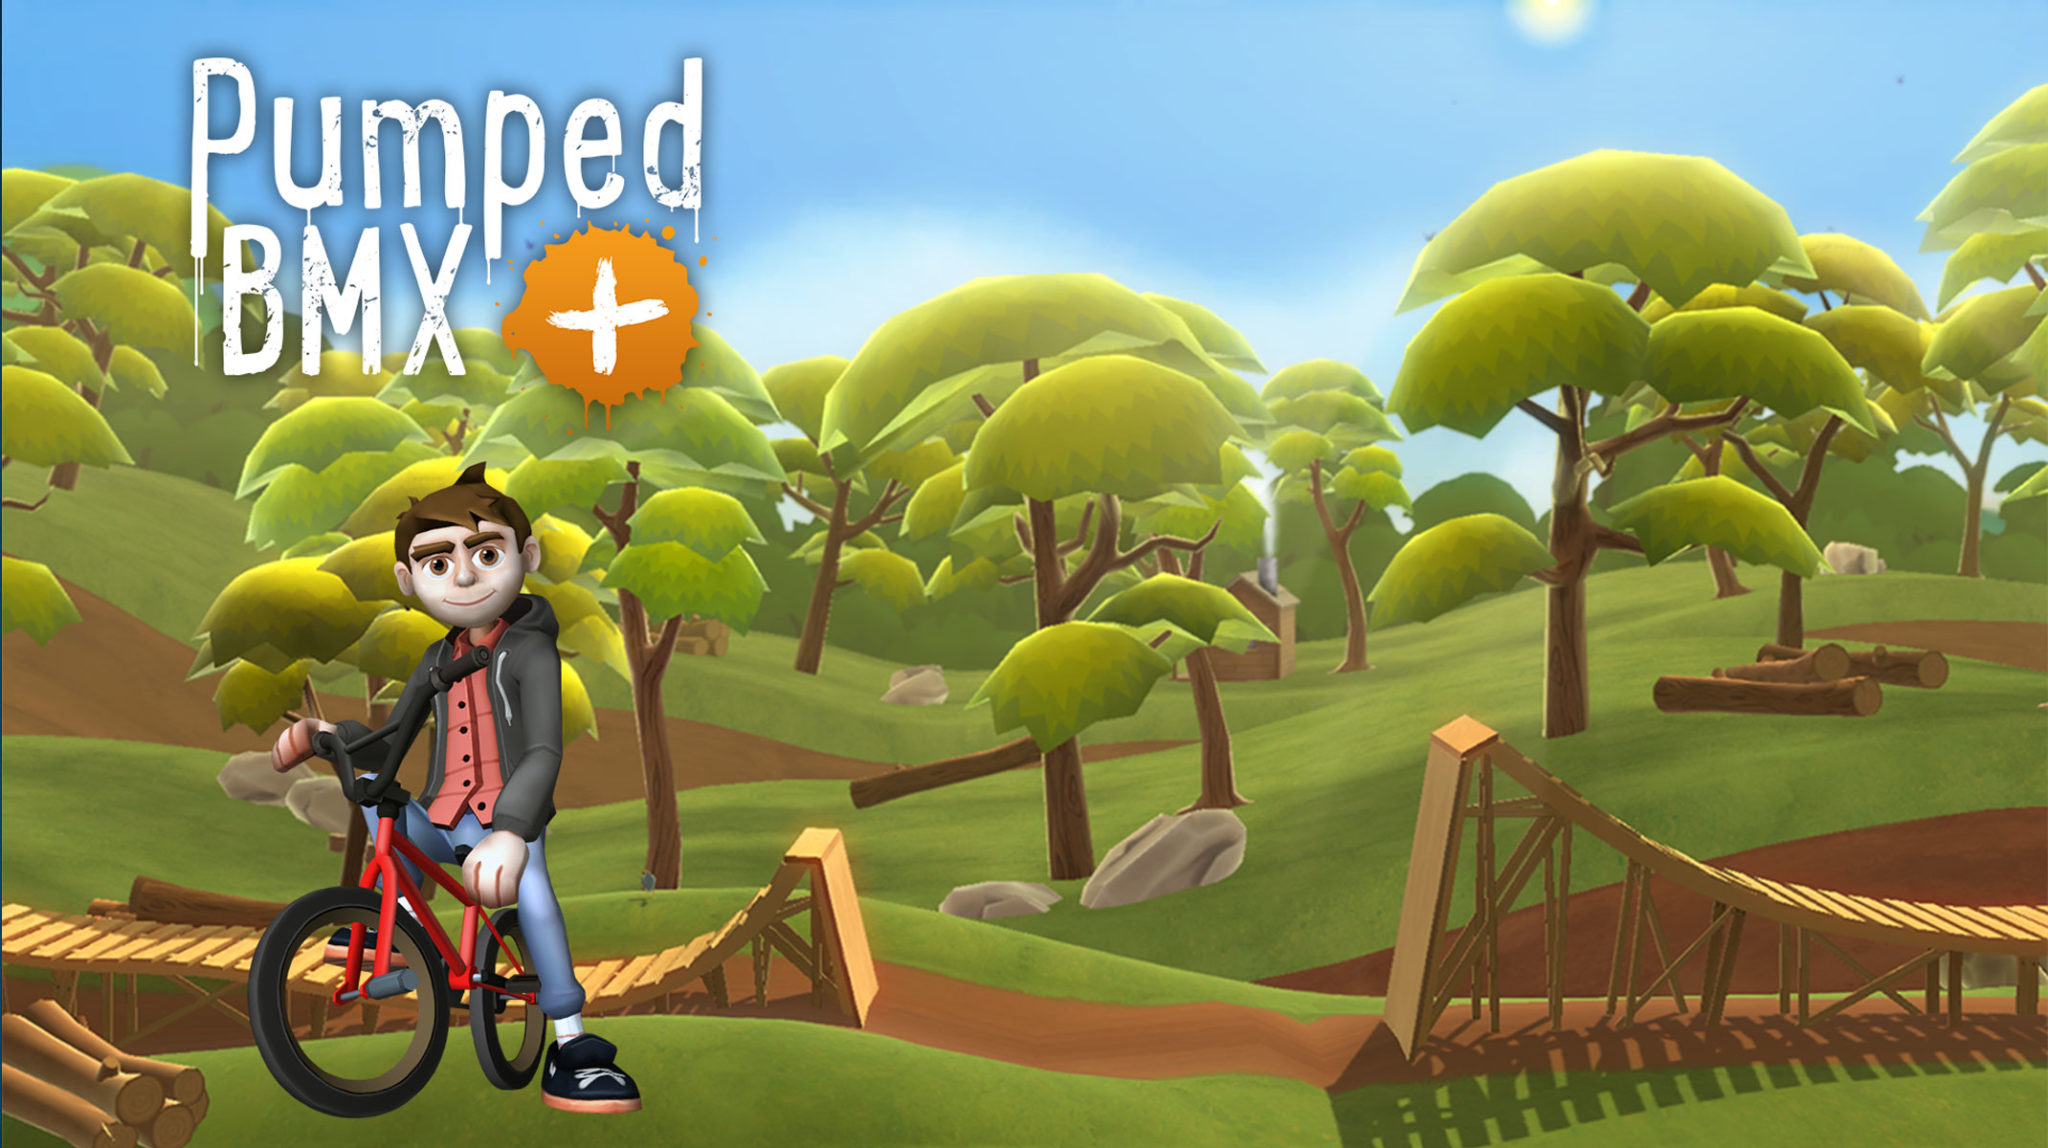 Play Pumped BMX 3 to find out